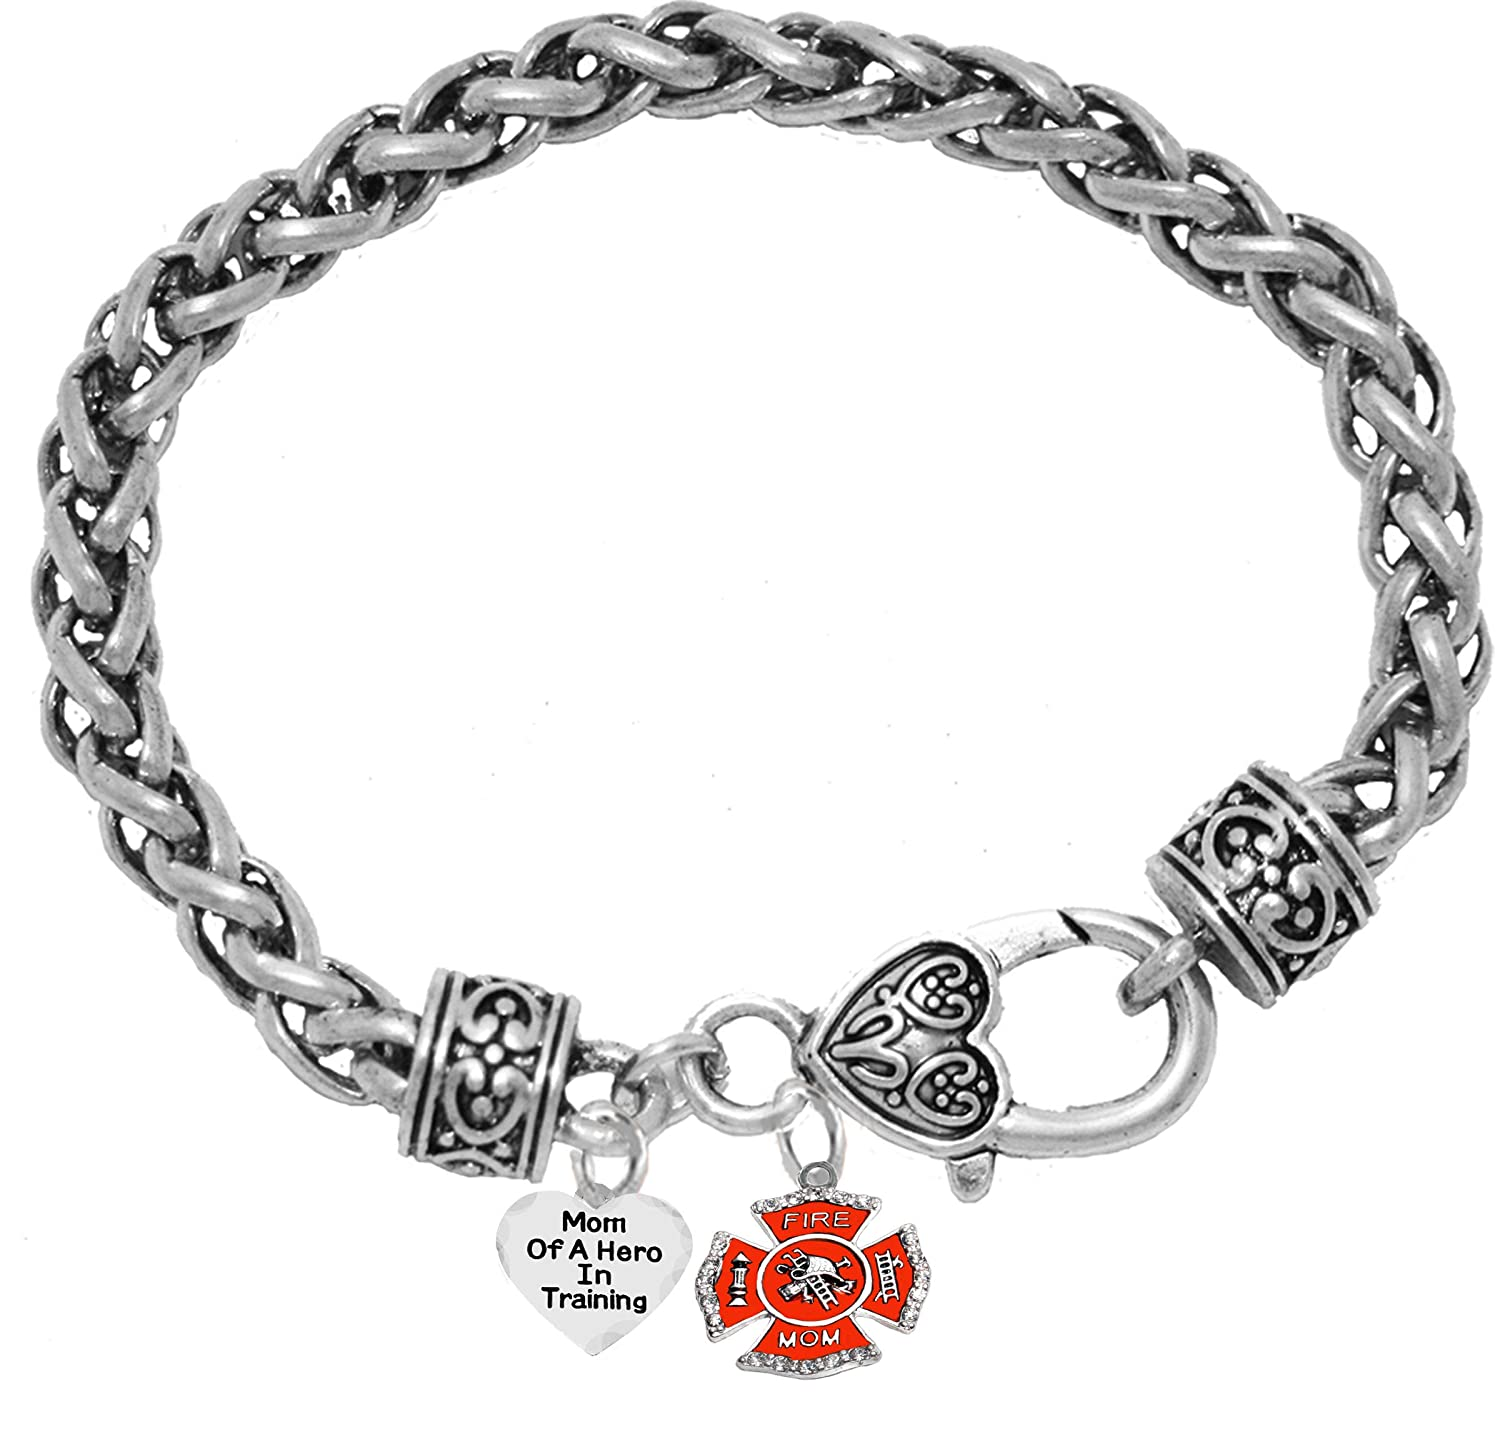 On A Antique Genuine Red Leather Bracelet Mom of A Hero in Training Lead and Cadmium Free Hypoallergenic Safe-Nickel Fire Department Charm Cardinali Jewelry Firefighter